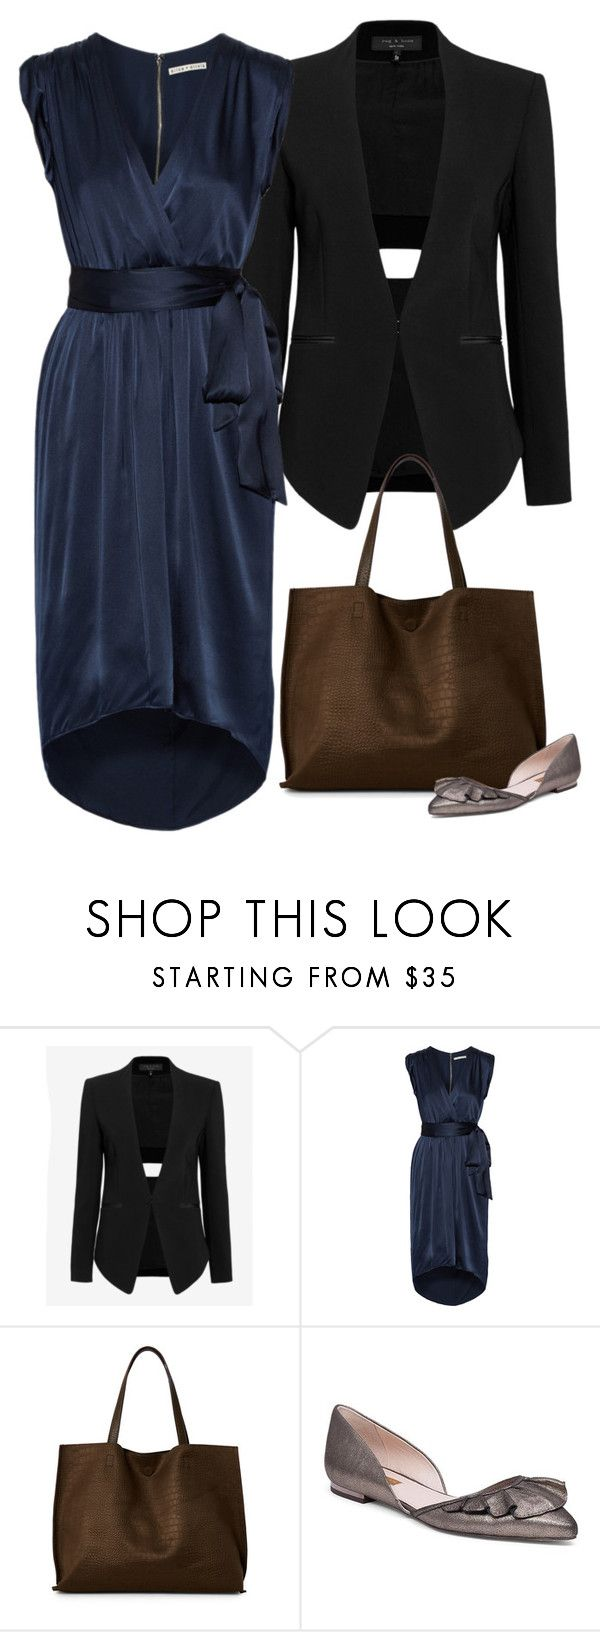 """""""On the international stage"""" by brooklynbeatz ❤ liked on Polyvore featuring rag & bone, Alice + Olivia, Street Level, Louise et Cie, WorkWear and workoutfit"""